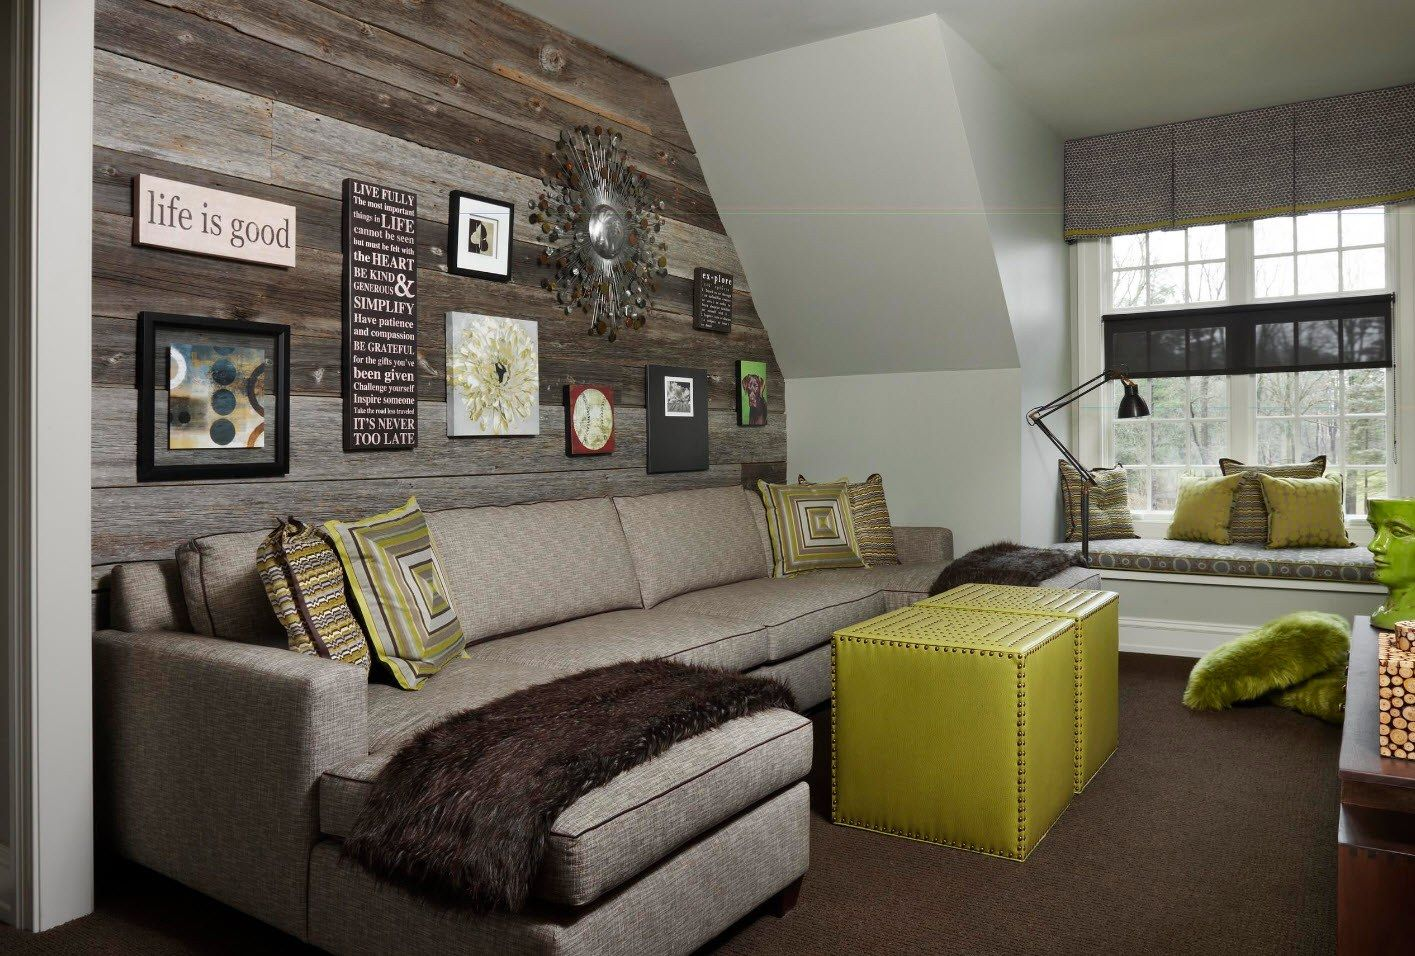 150 Square Feet Living Room Best Arrangement Ideas. Green pouf and gray leather sofa